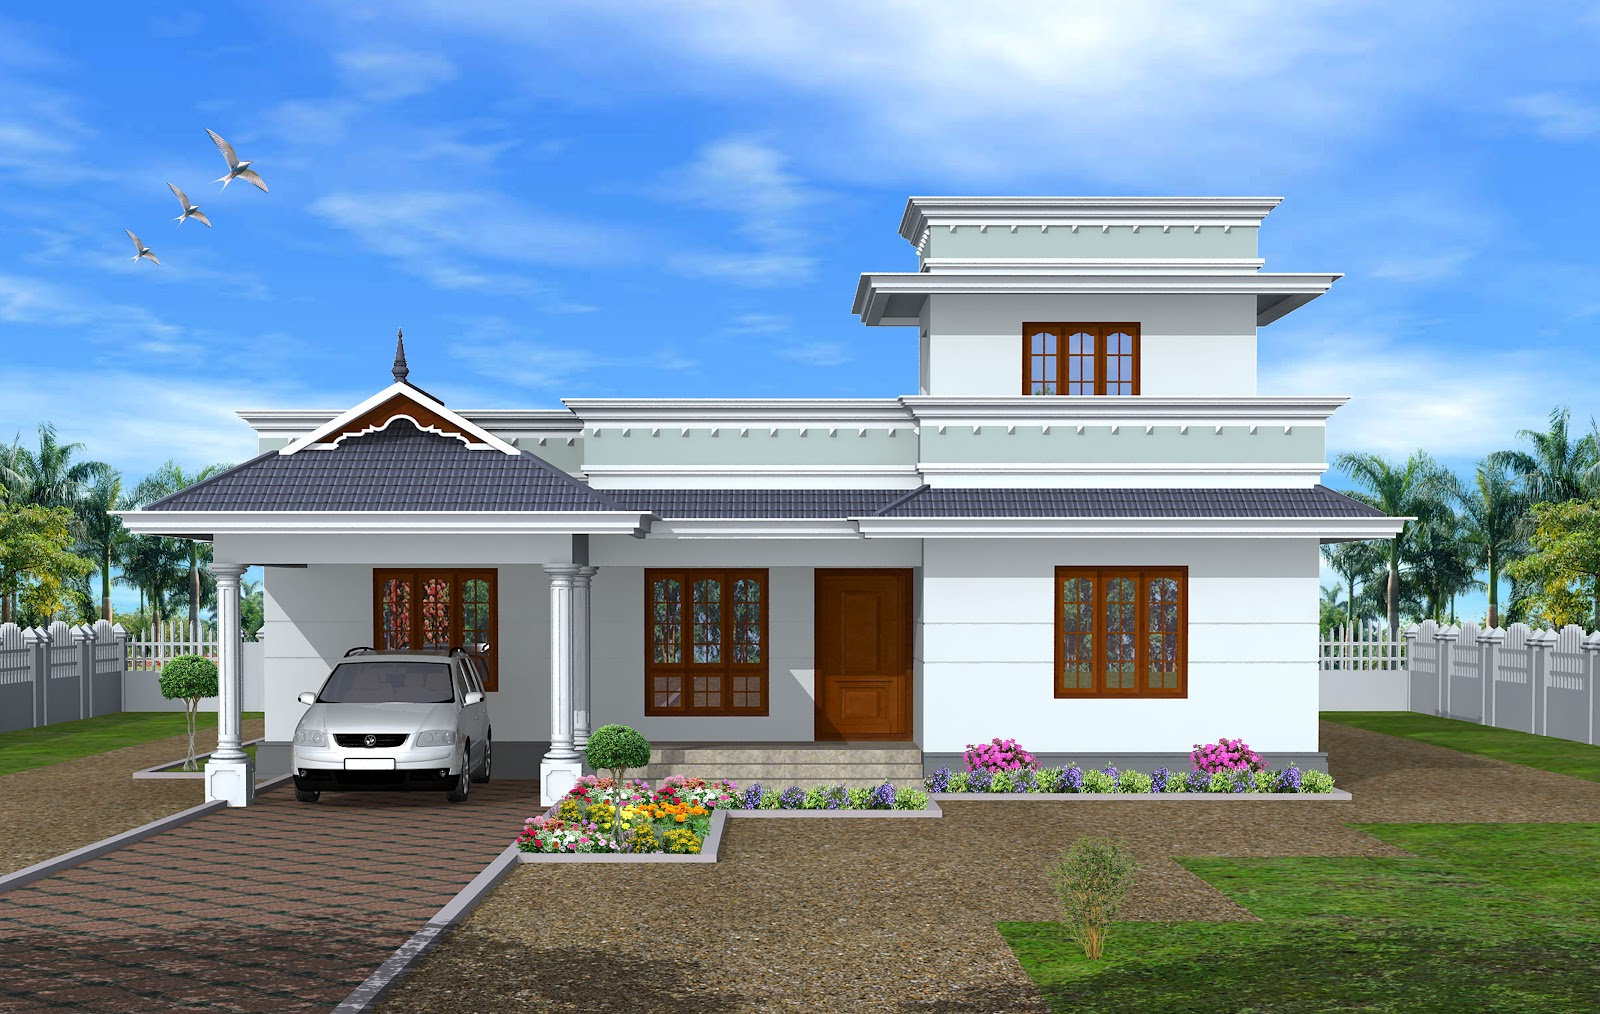 Green homes construction single floor kerala model house for Kerala model house photos with details